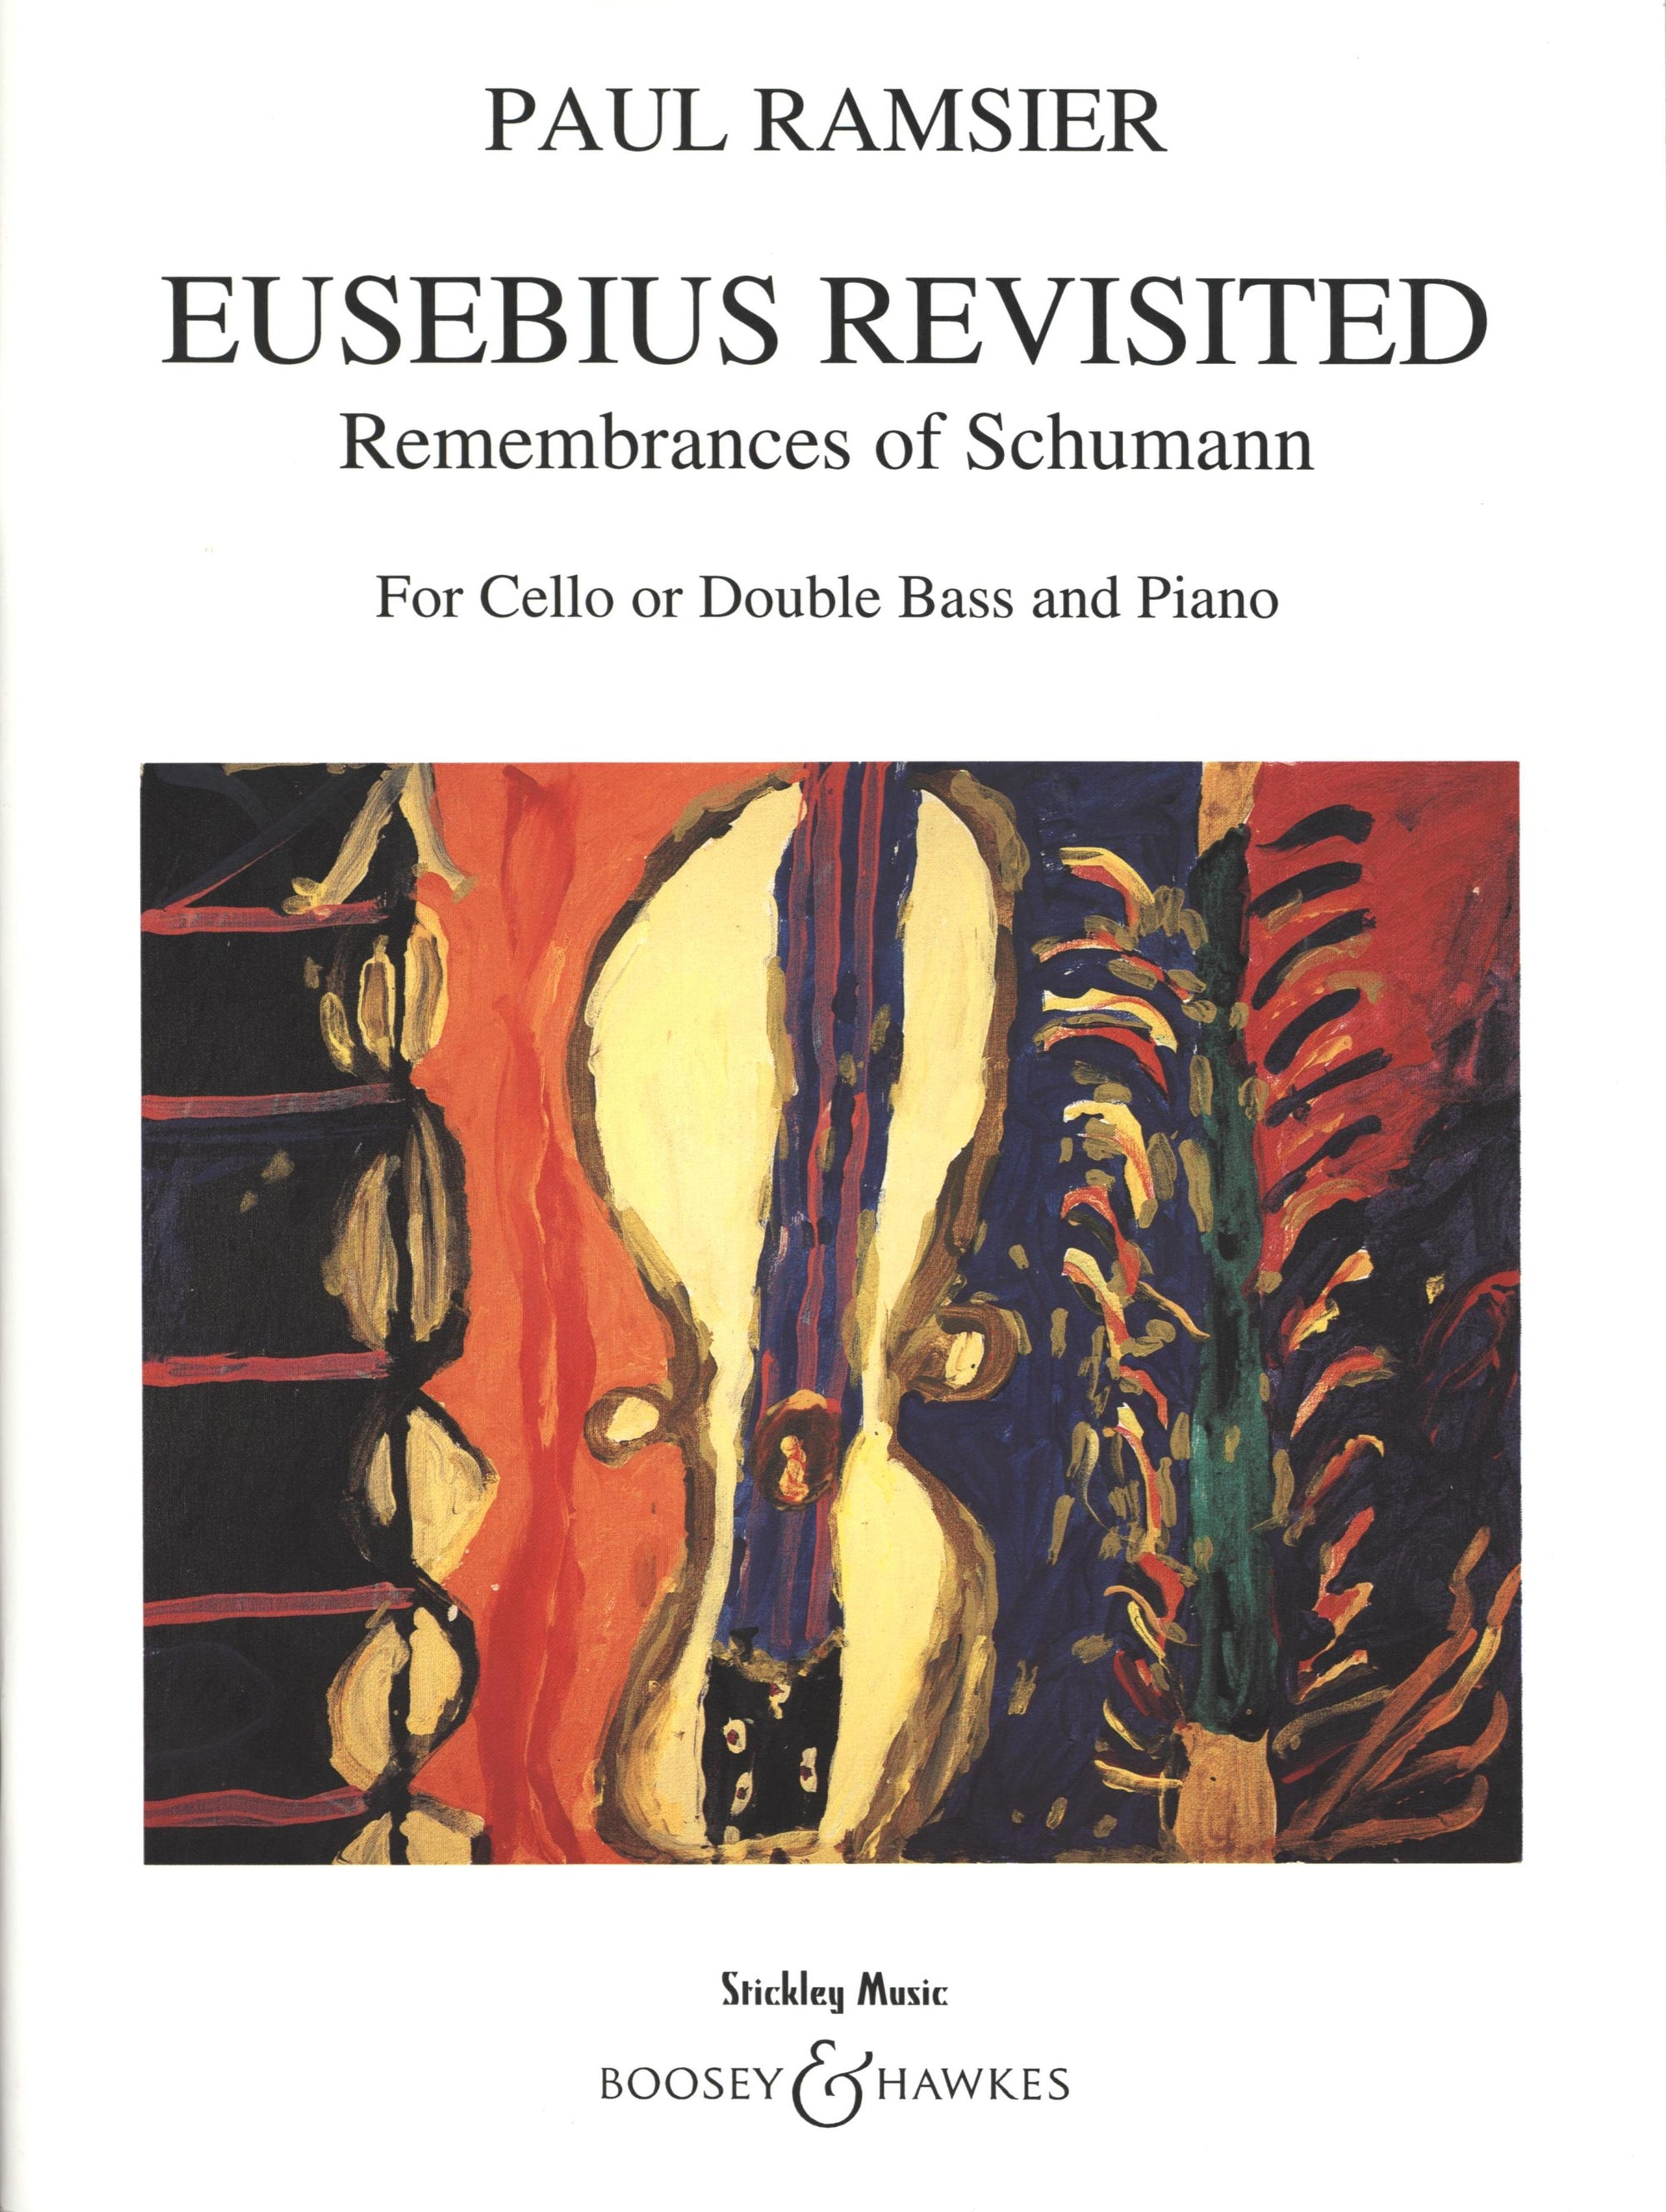 Ramsier: Eusebius Revisited